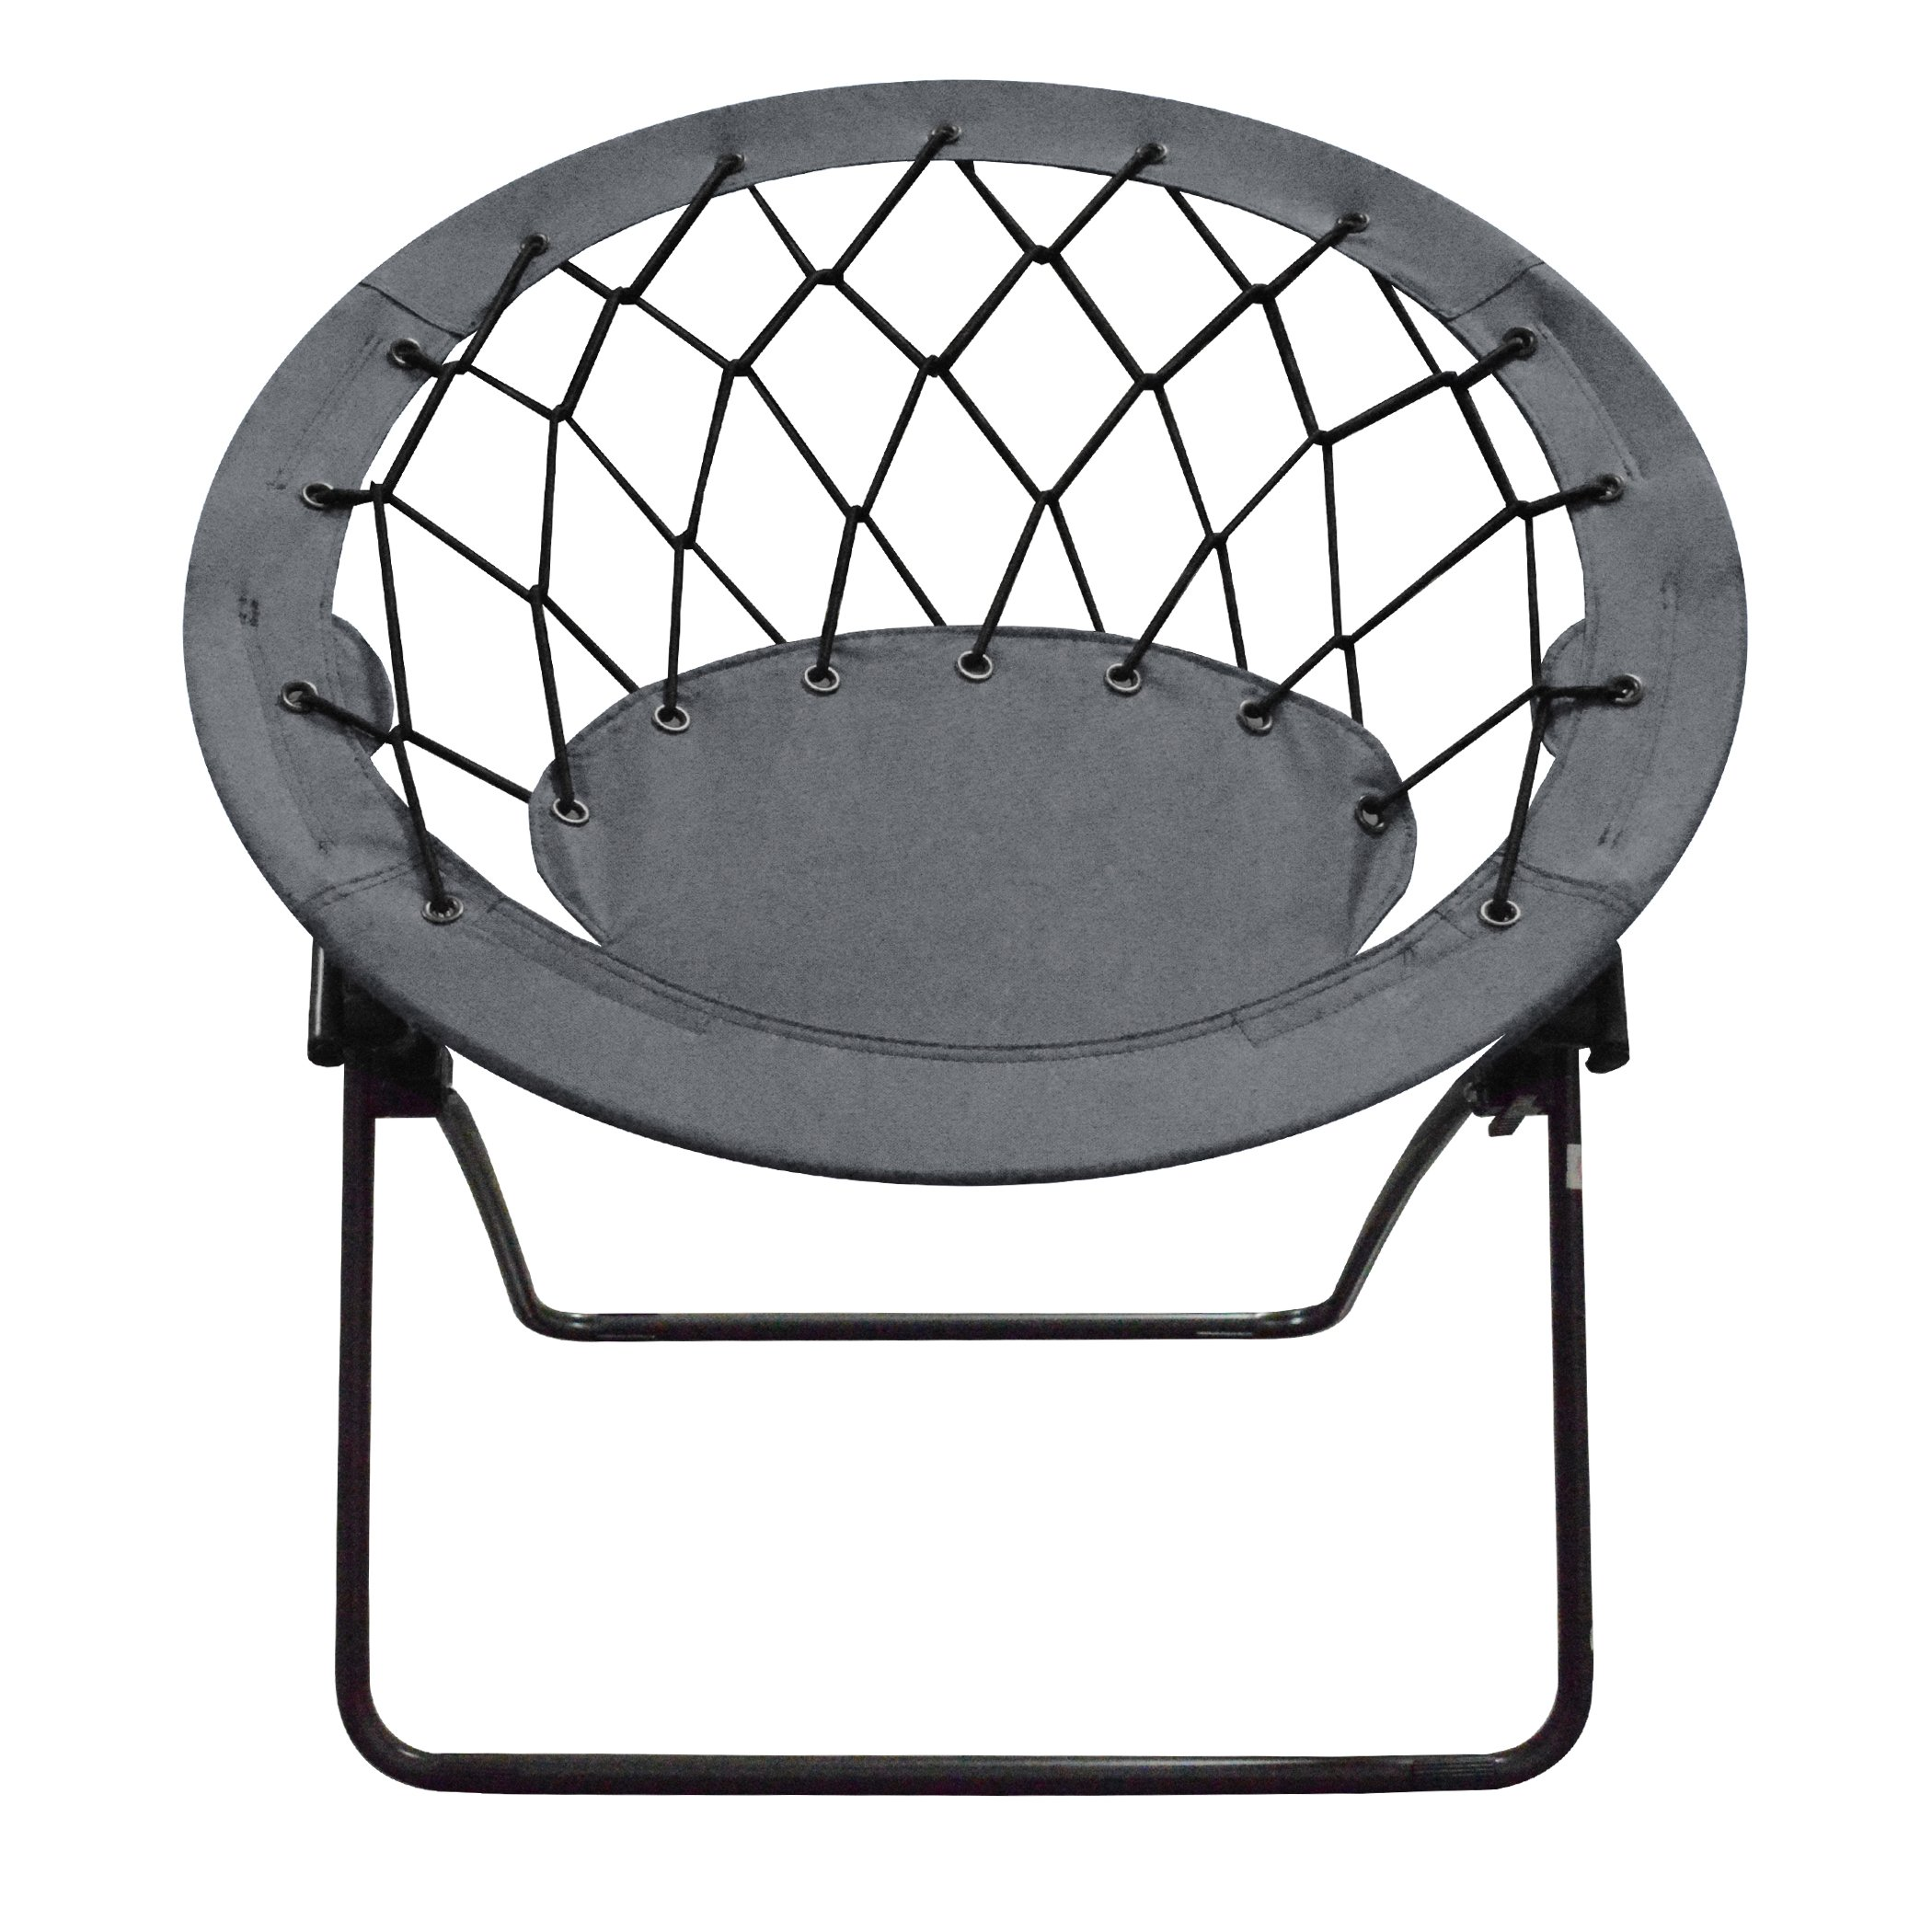 Impact Canopy Web Round Bungee Chair, Lightweight Portable Folding Chair, Grey